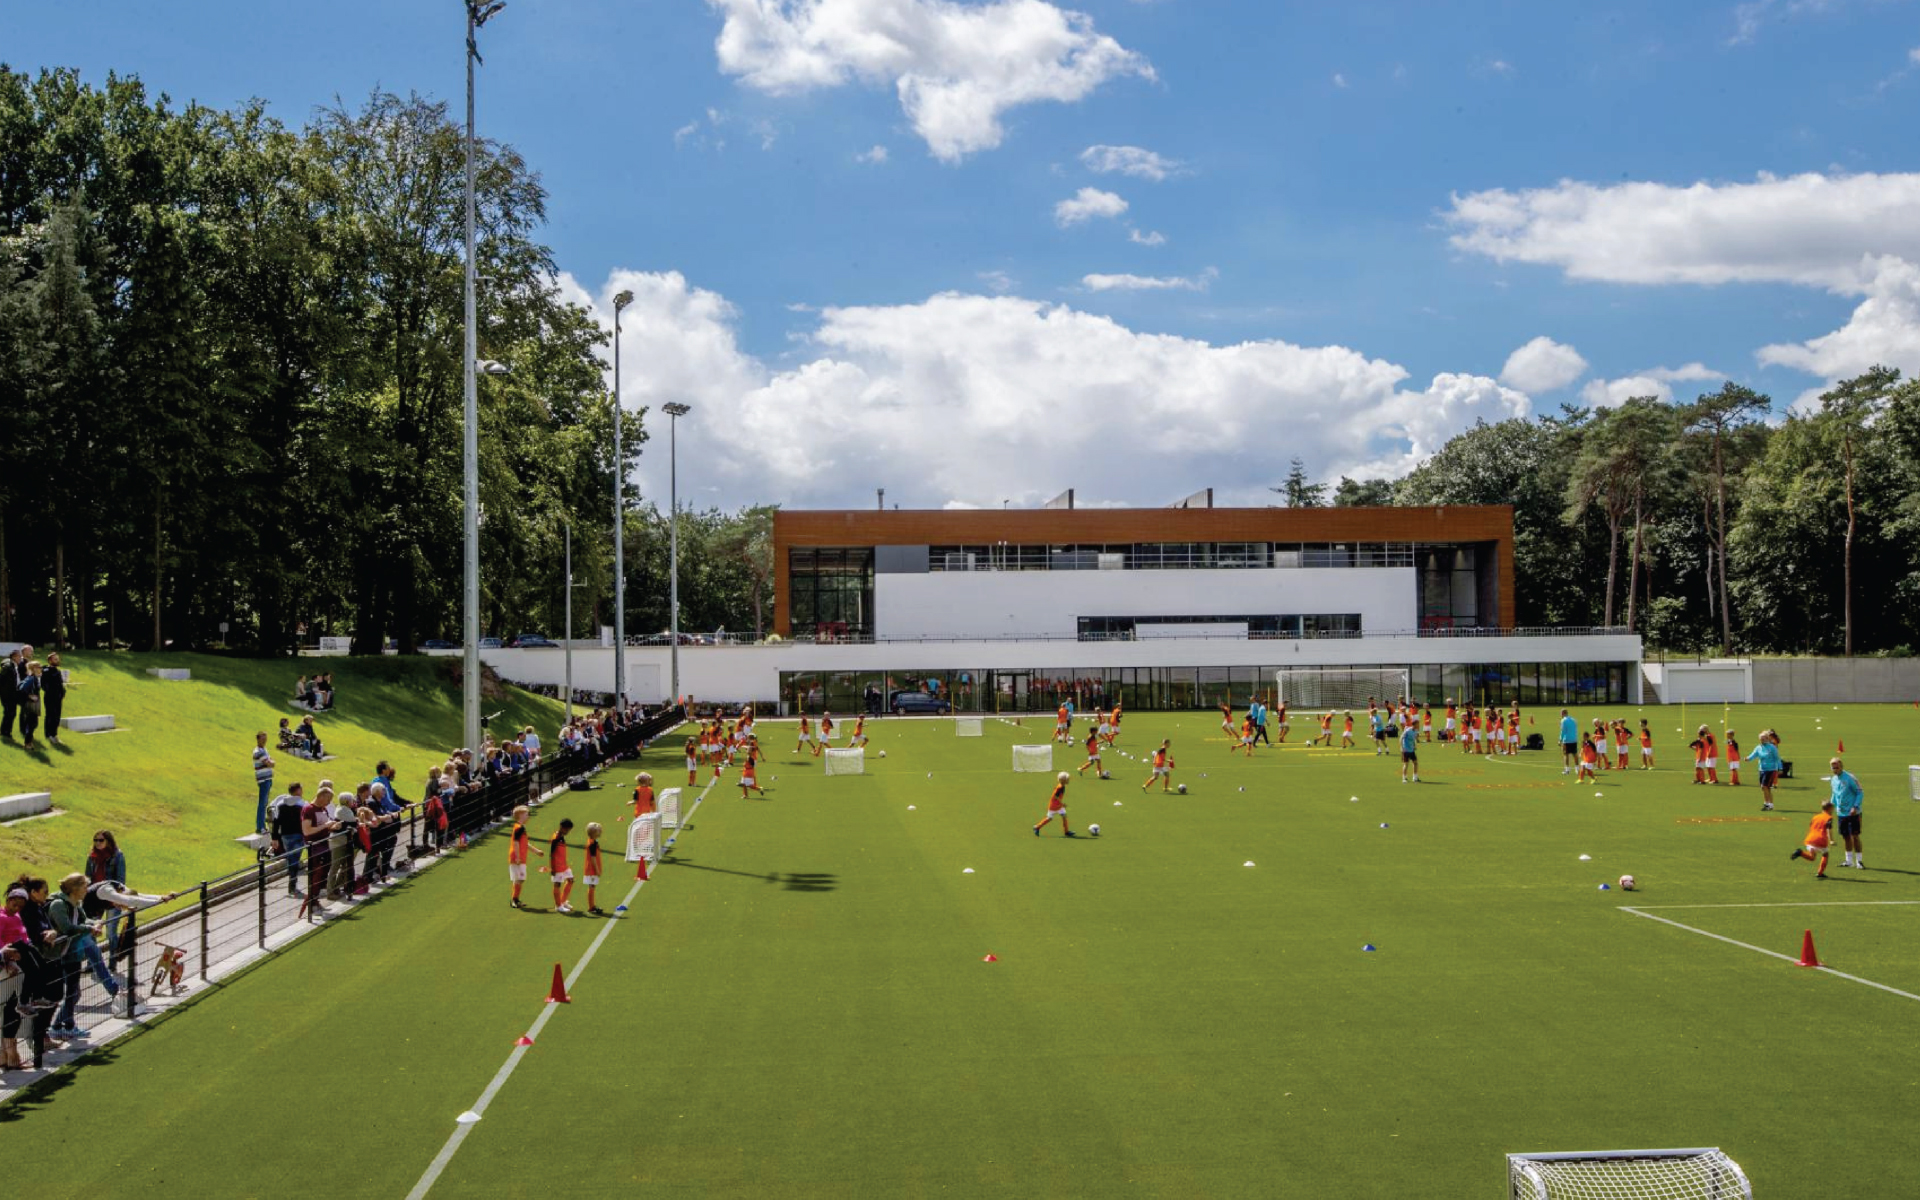 KNVB Campus Zeist DAY Creative soccer field Vision on brand and experience